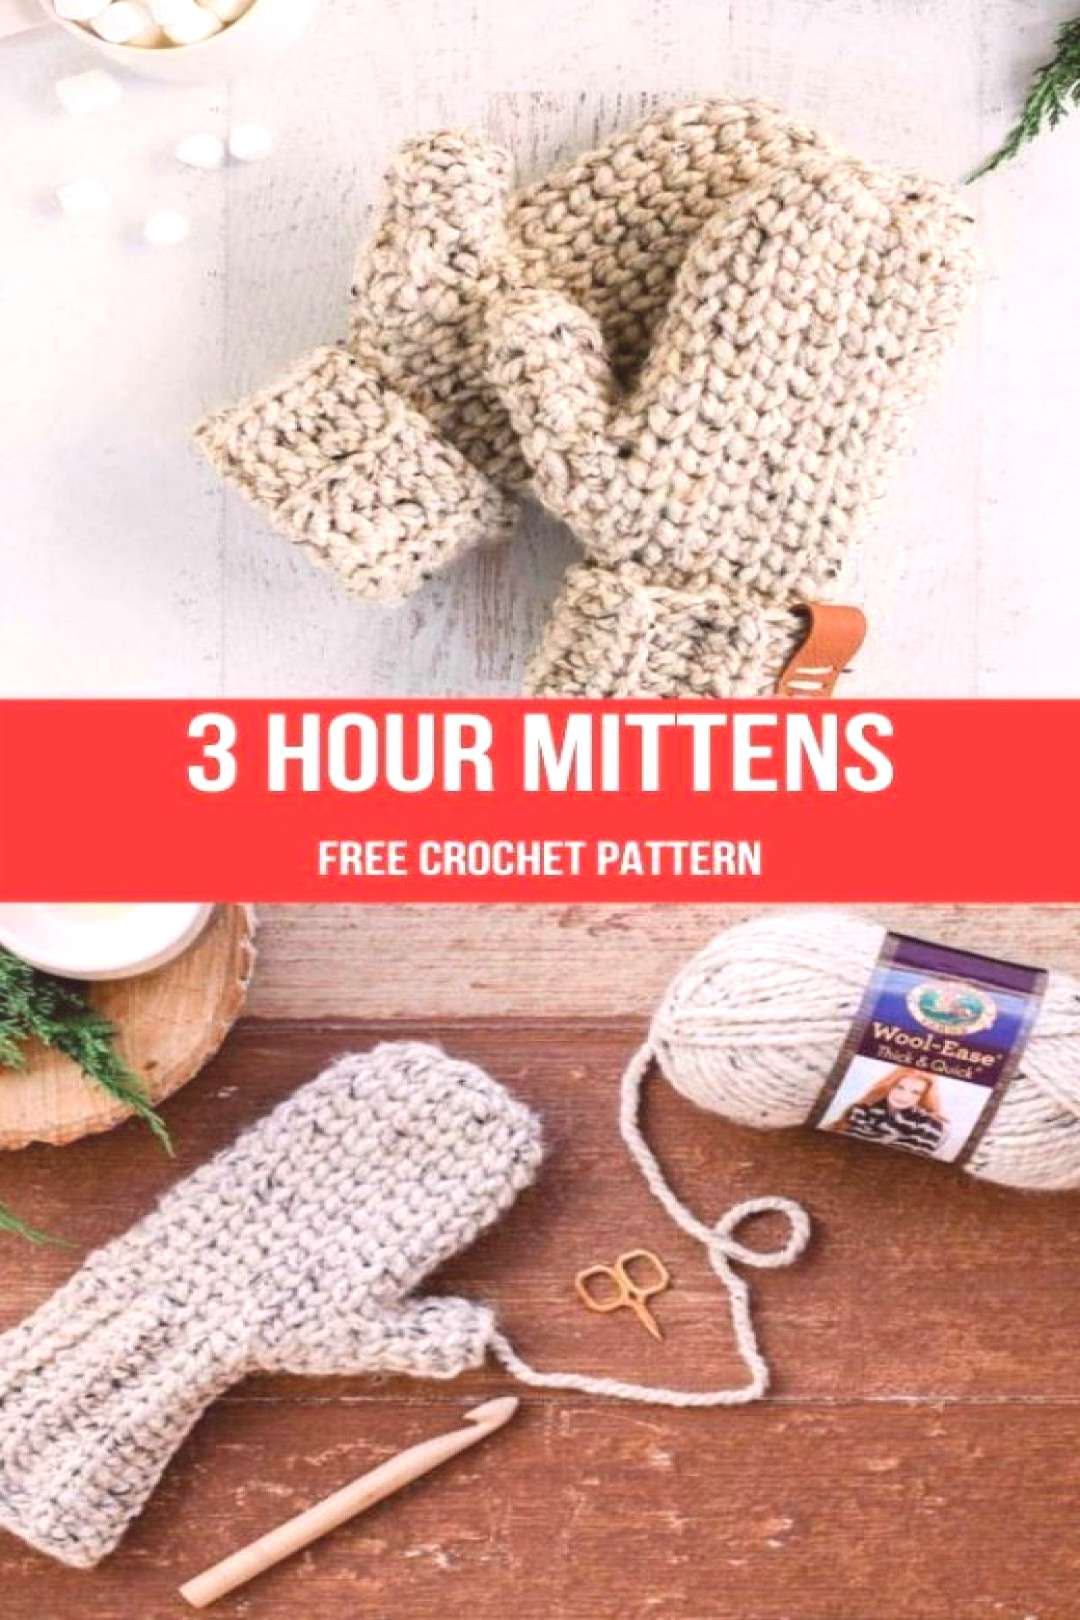 3 HOUR CHUNKY CROCHET MITTENS FREE Pattern   Pattern Forest -  -